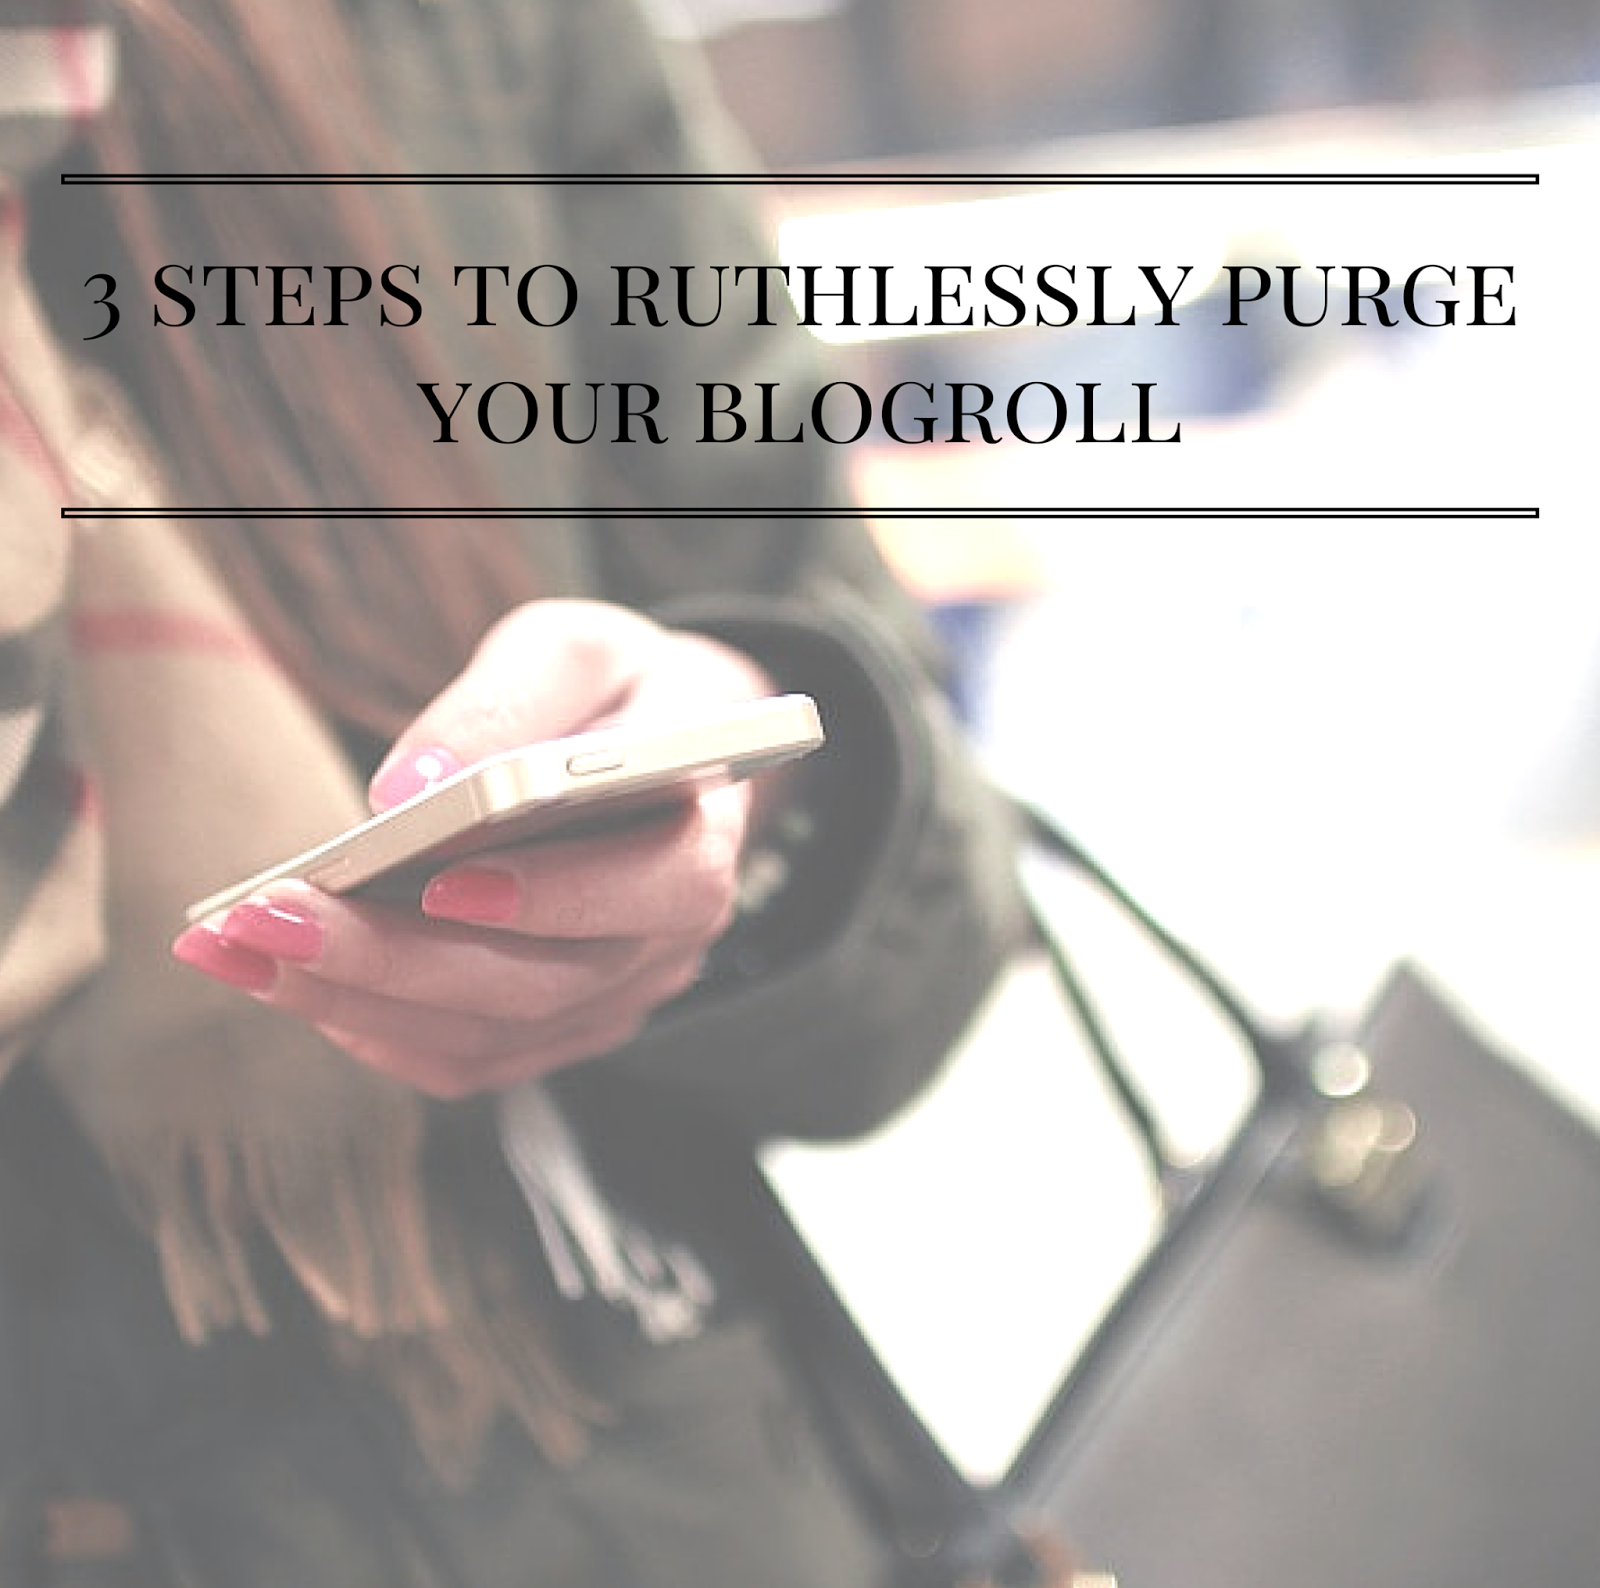 3 Steps To Ruthlessly Purge Your Blogroll | alyssajfreitas.blogspot.com